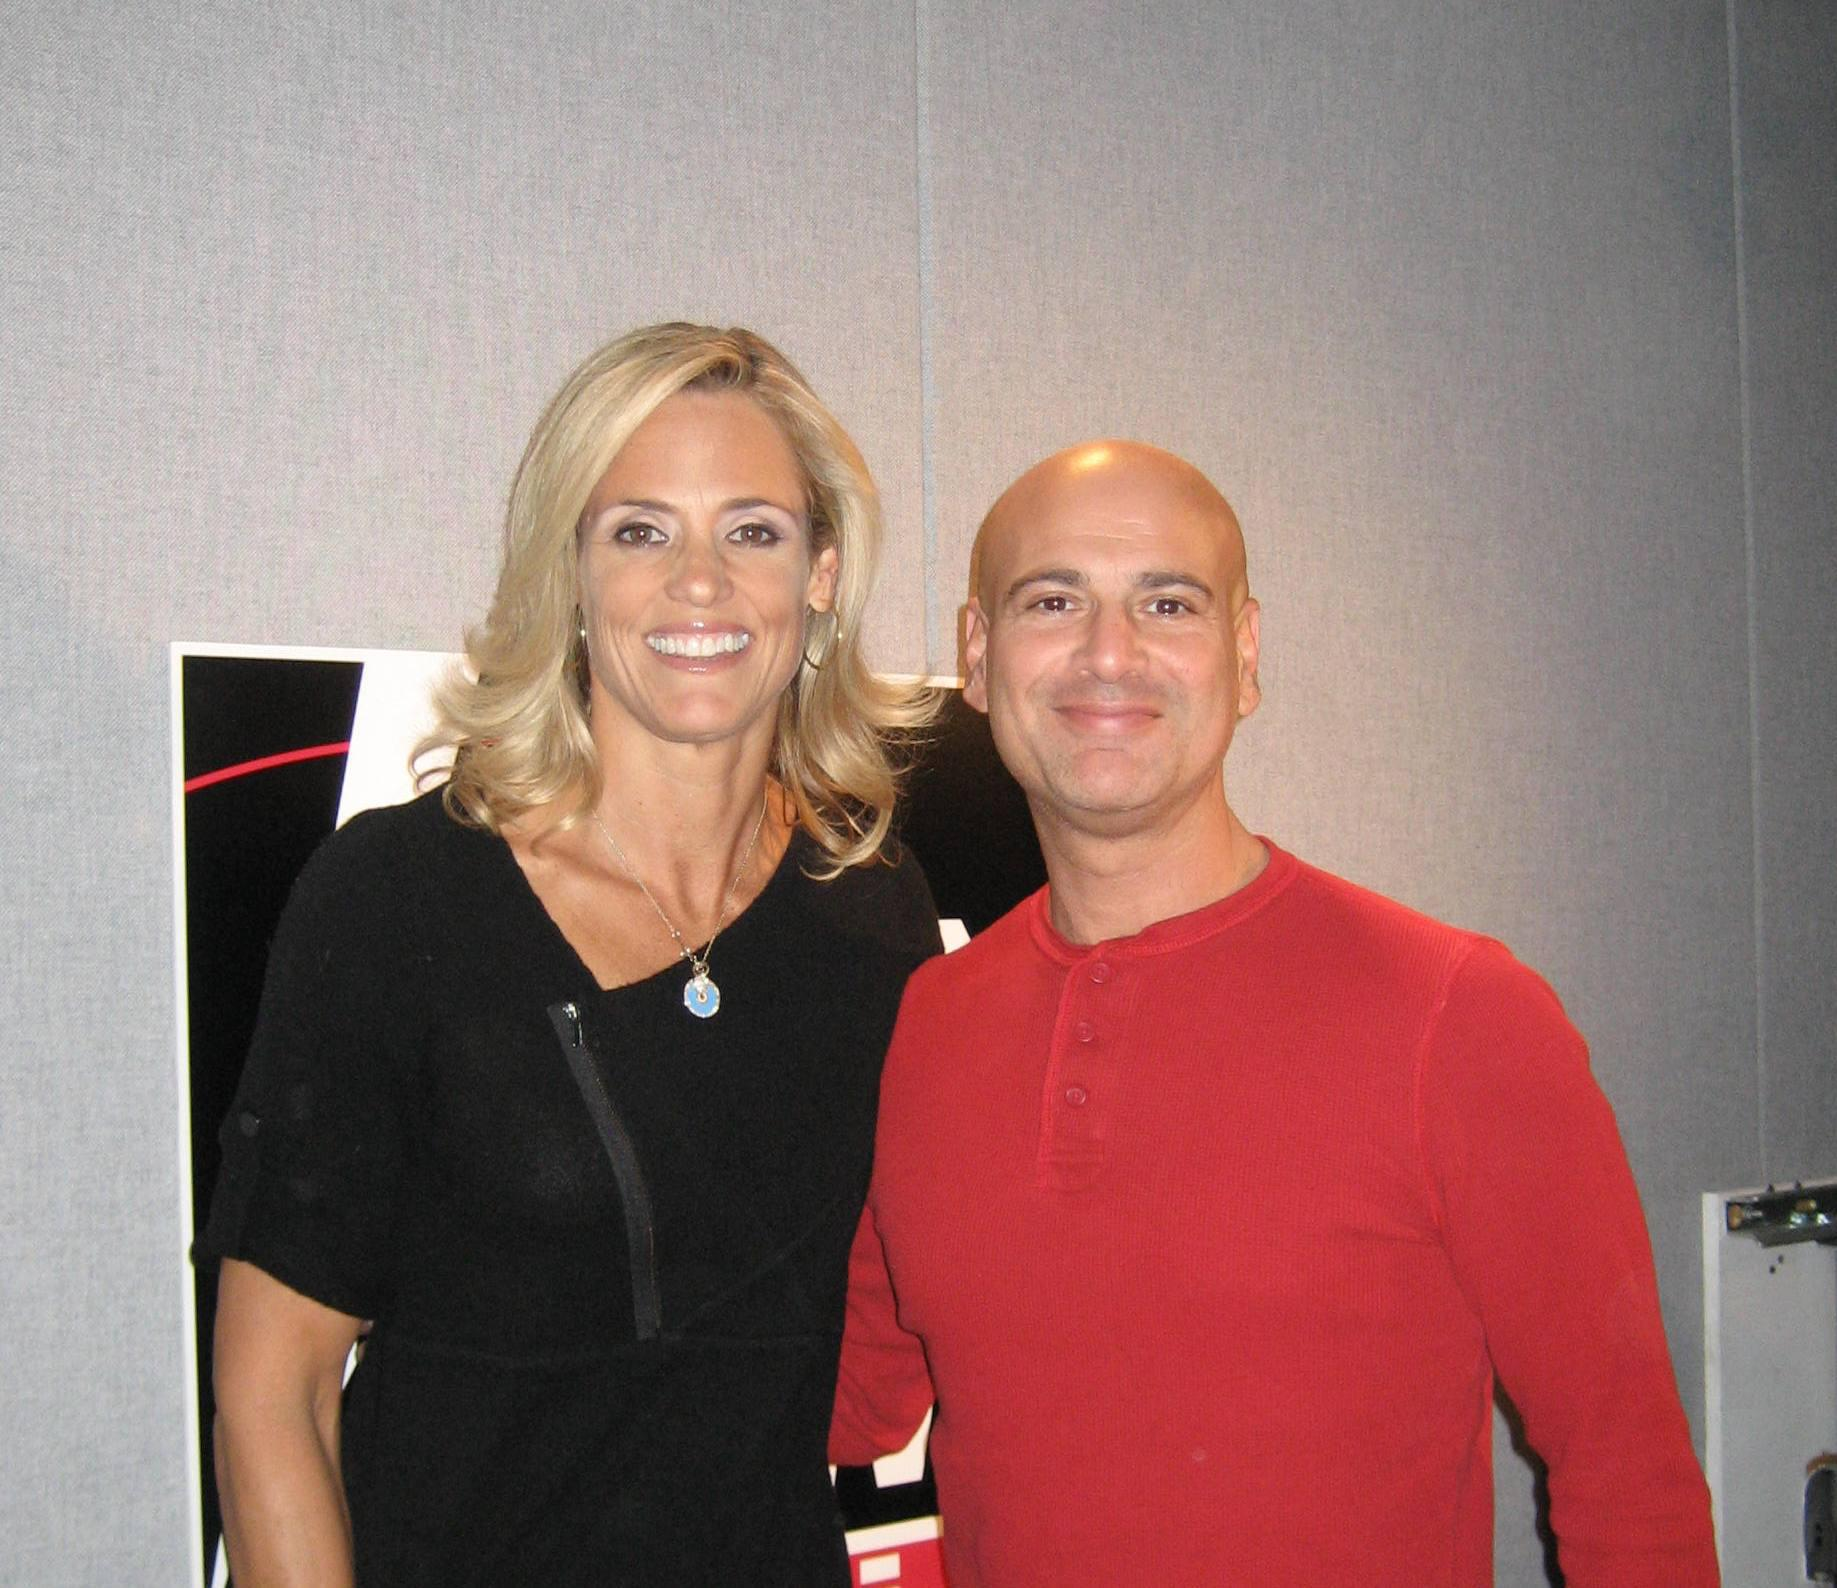 I root big for Dara Torres